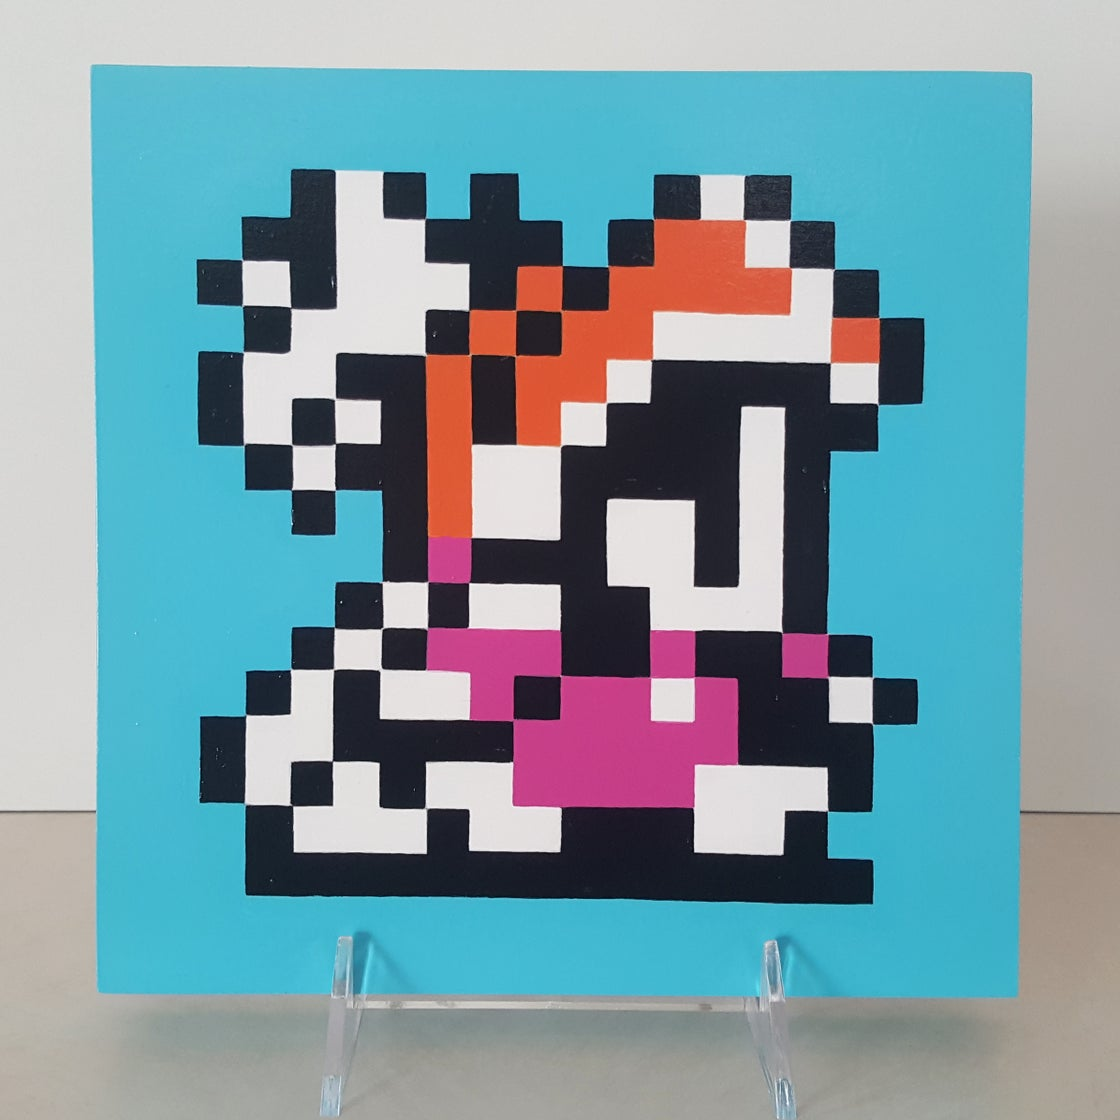 "Image of Final Fantasy 3 - Onion Knight Wooden Panel Pixel Painting - 8"" x 8"""